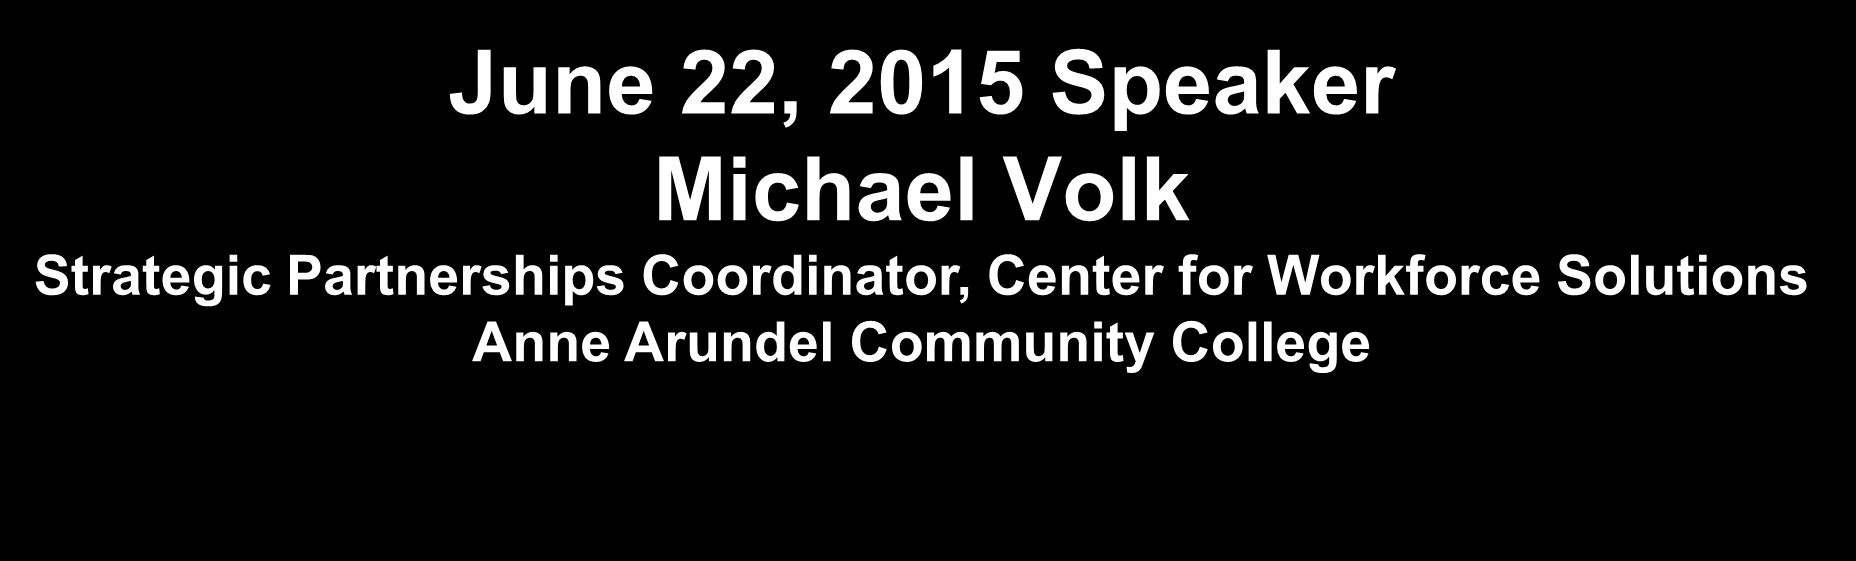 June 22, 2015 Speaker Michael Volk Strategic Partnerships Coordinator, Center for Workforce Solutions Anne Arundel Community College Michael Volk is the Strategic Partnerships Coordinator for the